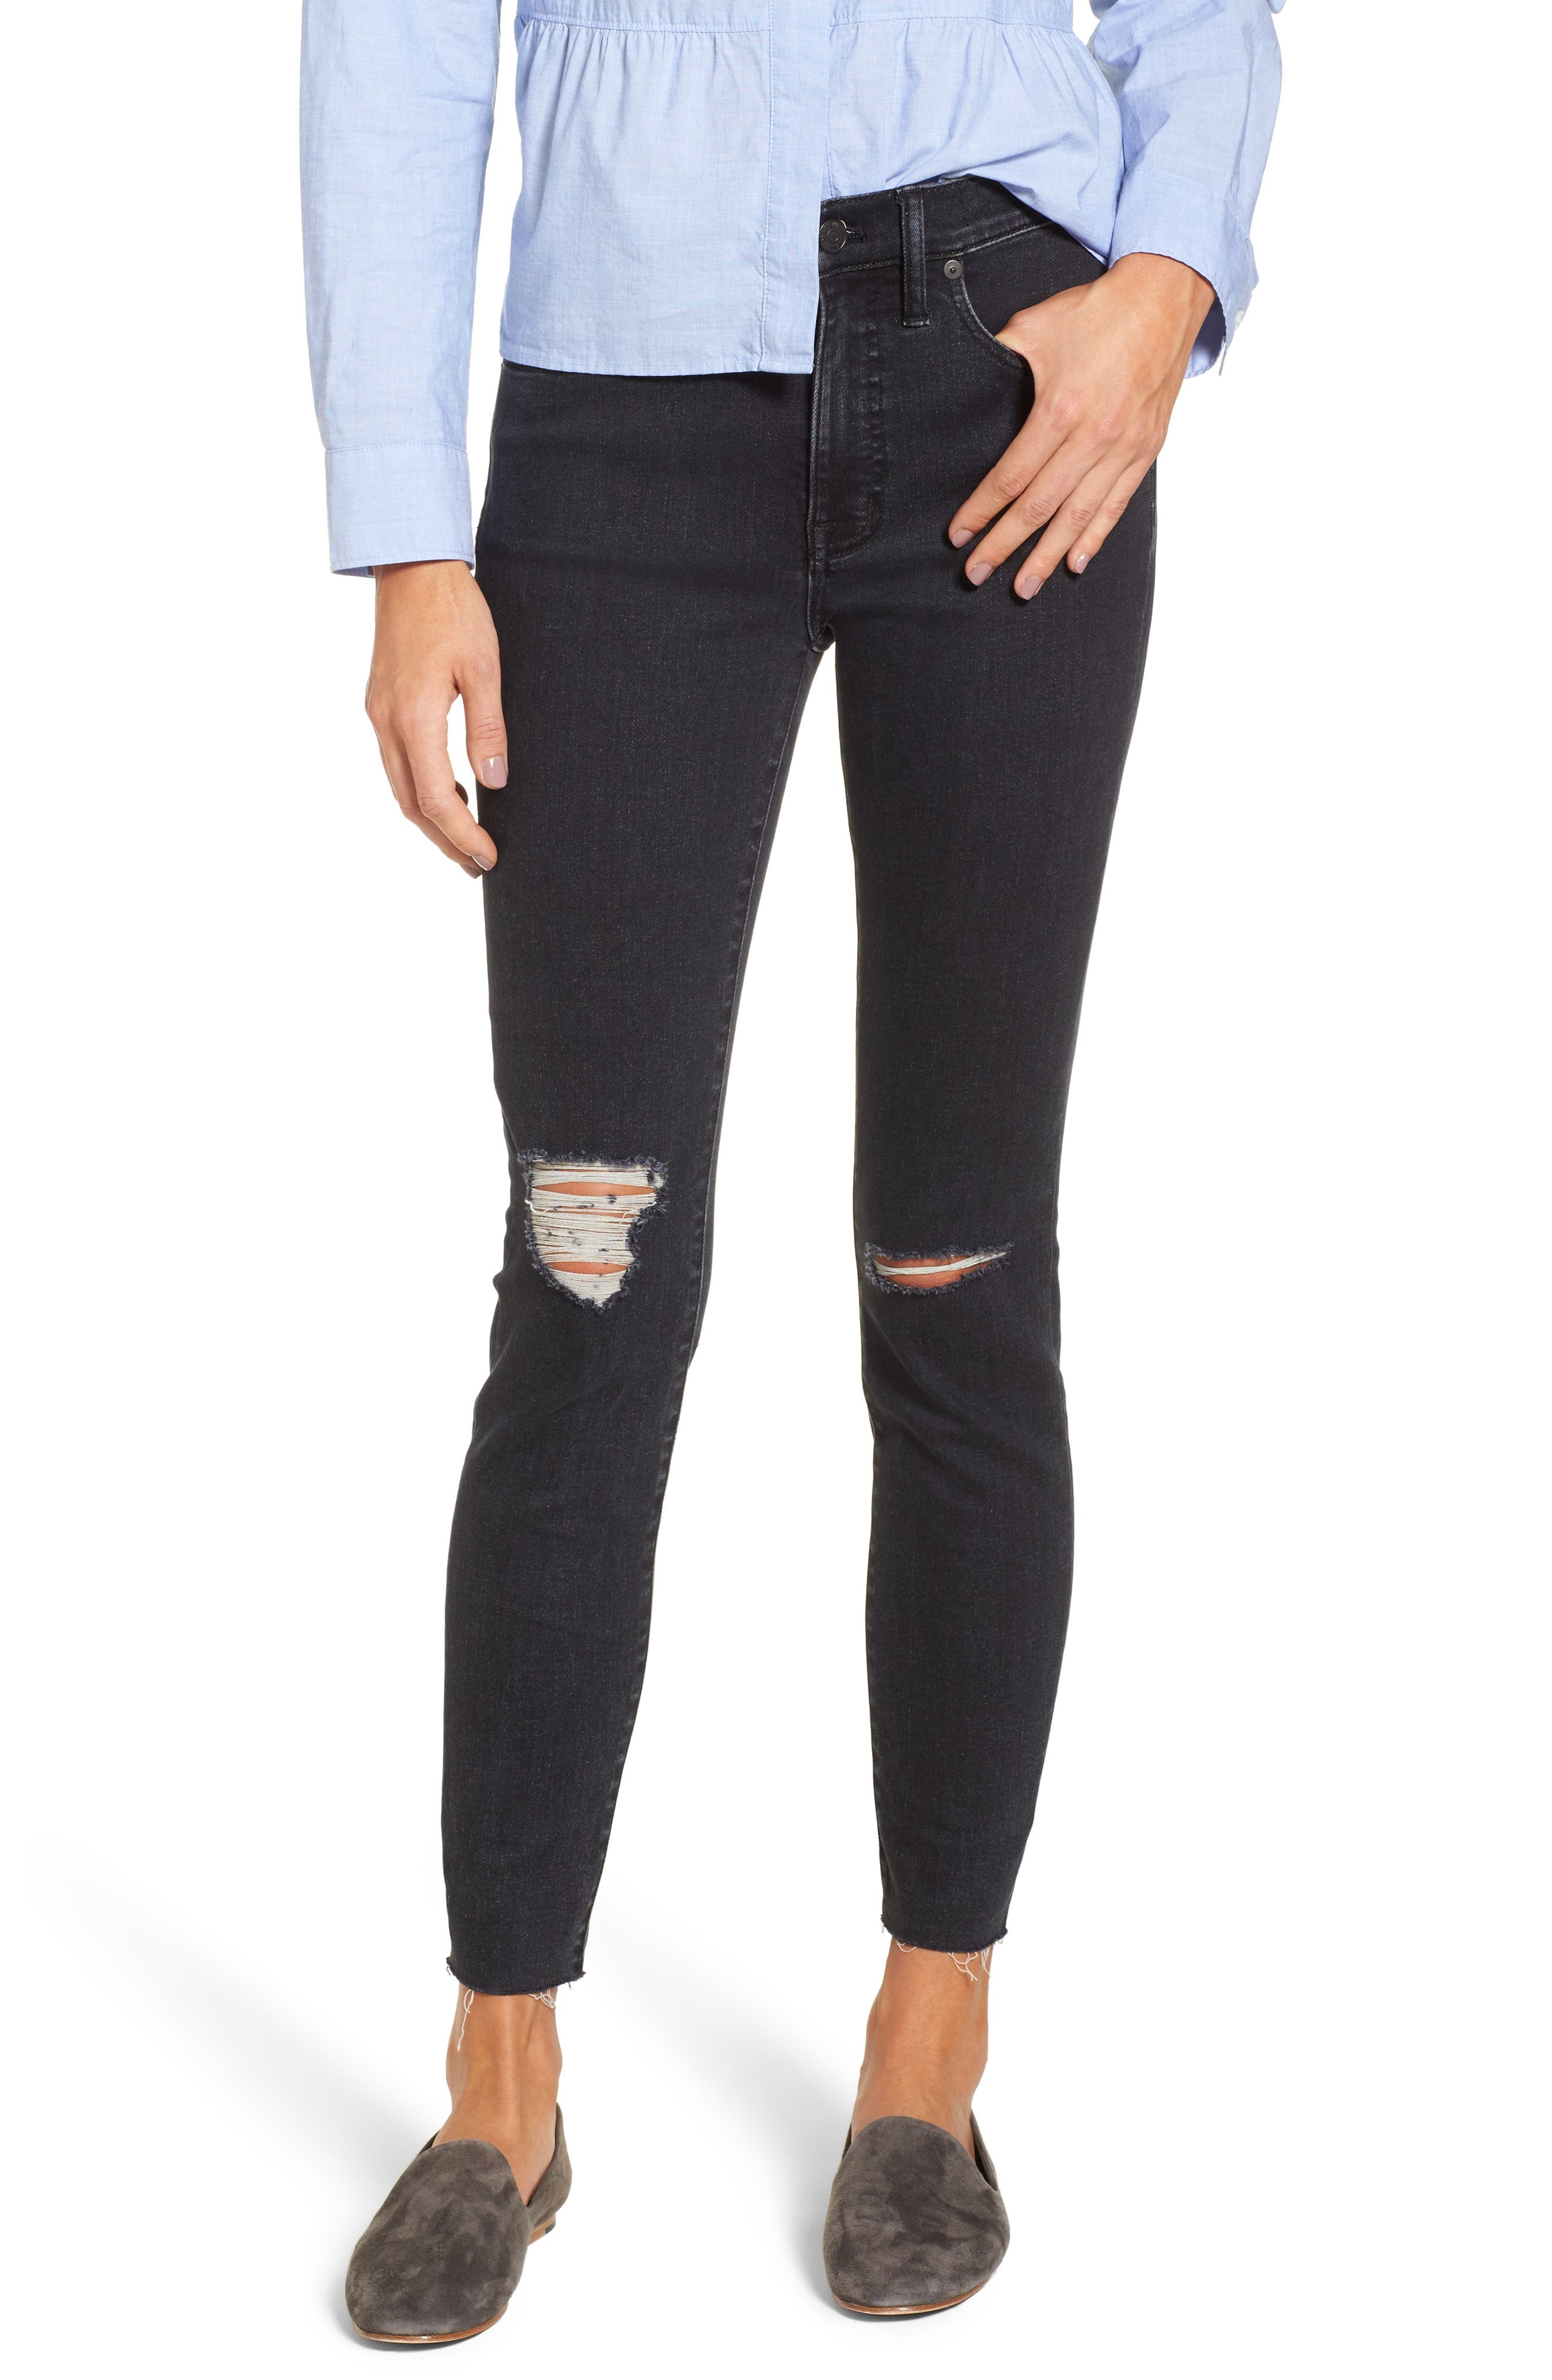 Alternate Image 1 Selected - Madewell 9-Inch High Rise Ripped Skinny Jeans (Ruth)